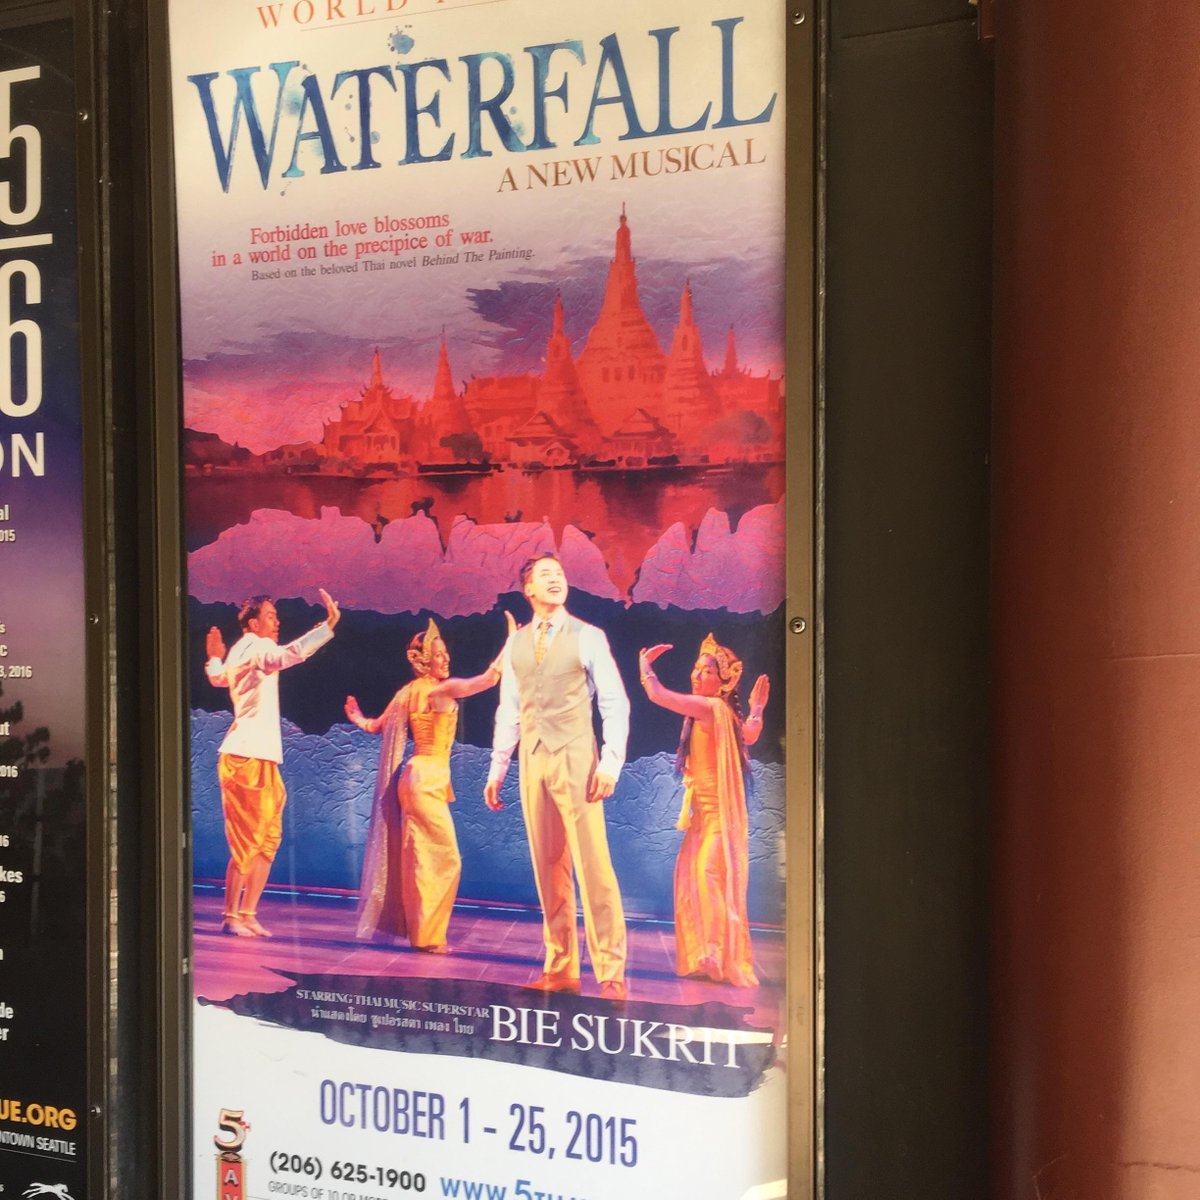 """Have you seen our new poster for """"Waterfall""""? We LOVE IT! #biesukrit #waterfall #5thavenue http://t.co/ADgEVX91fv"""